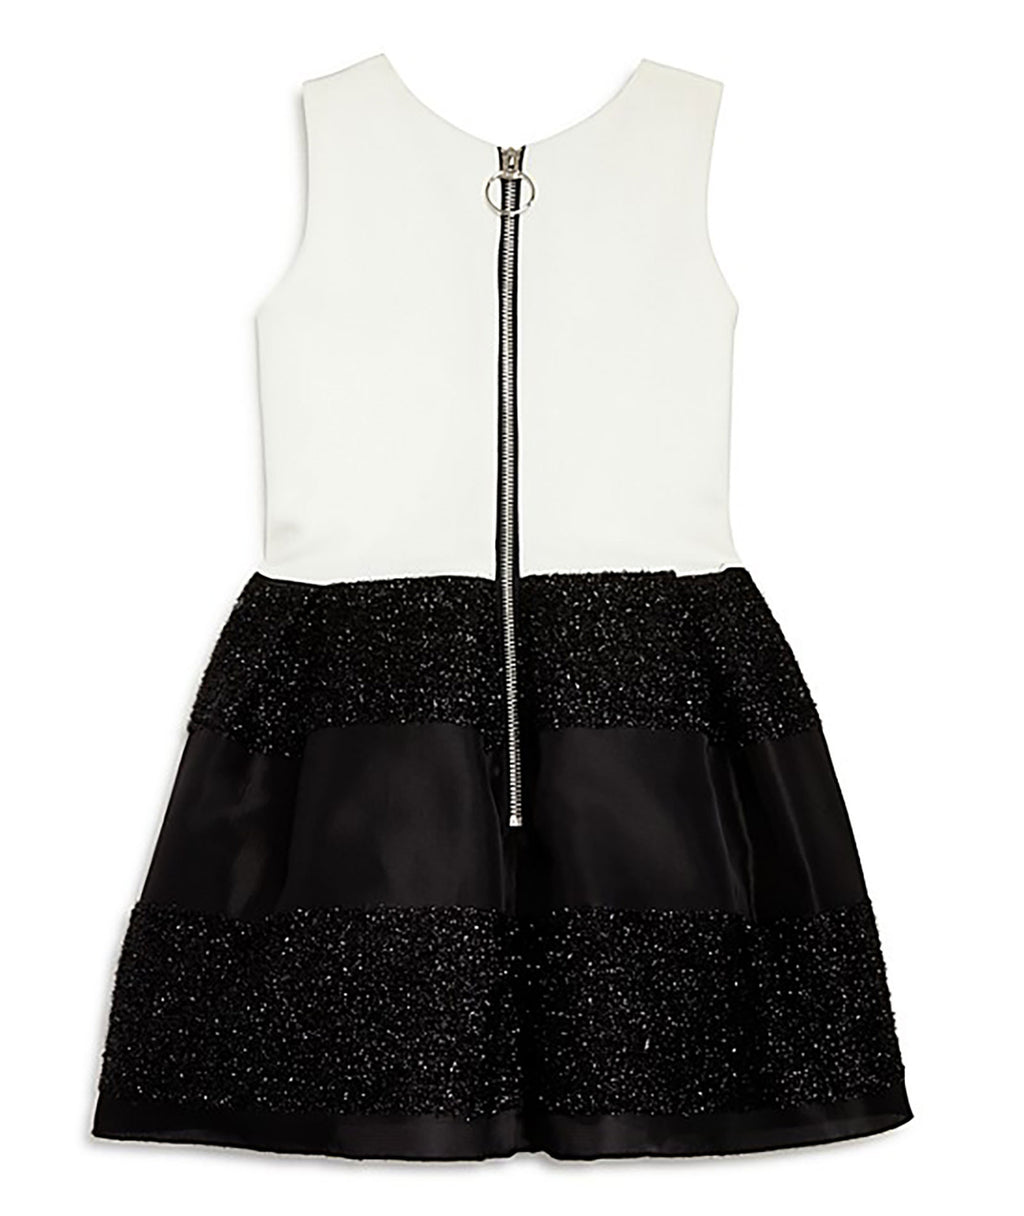 Zoe Ltd. Girls Black & White Dress - Frankie's on the Park